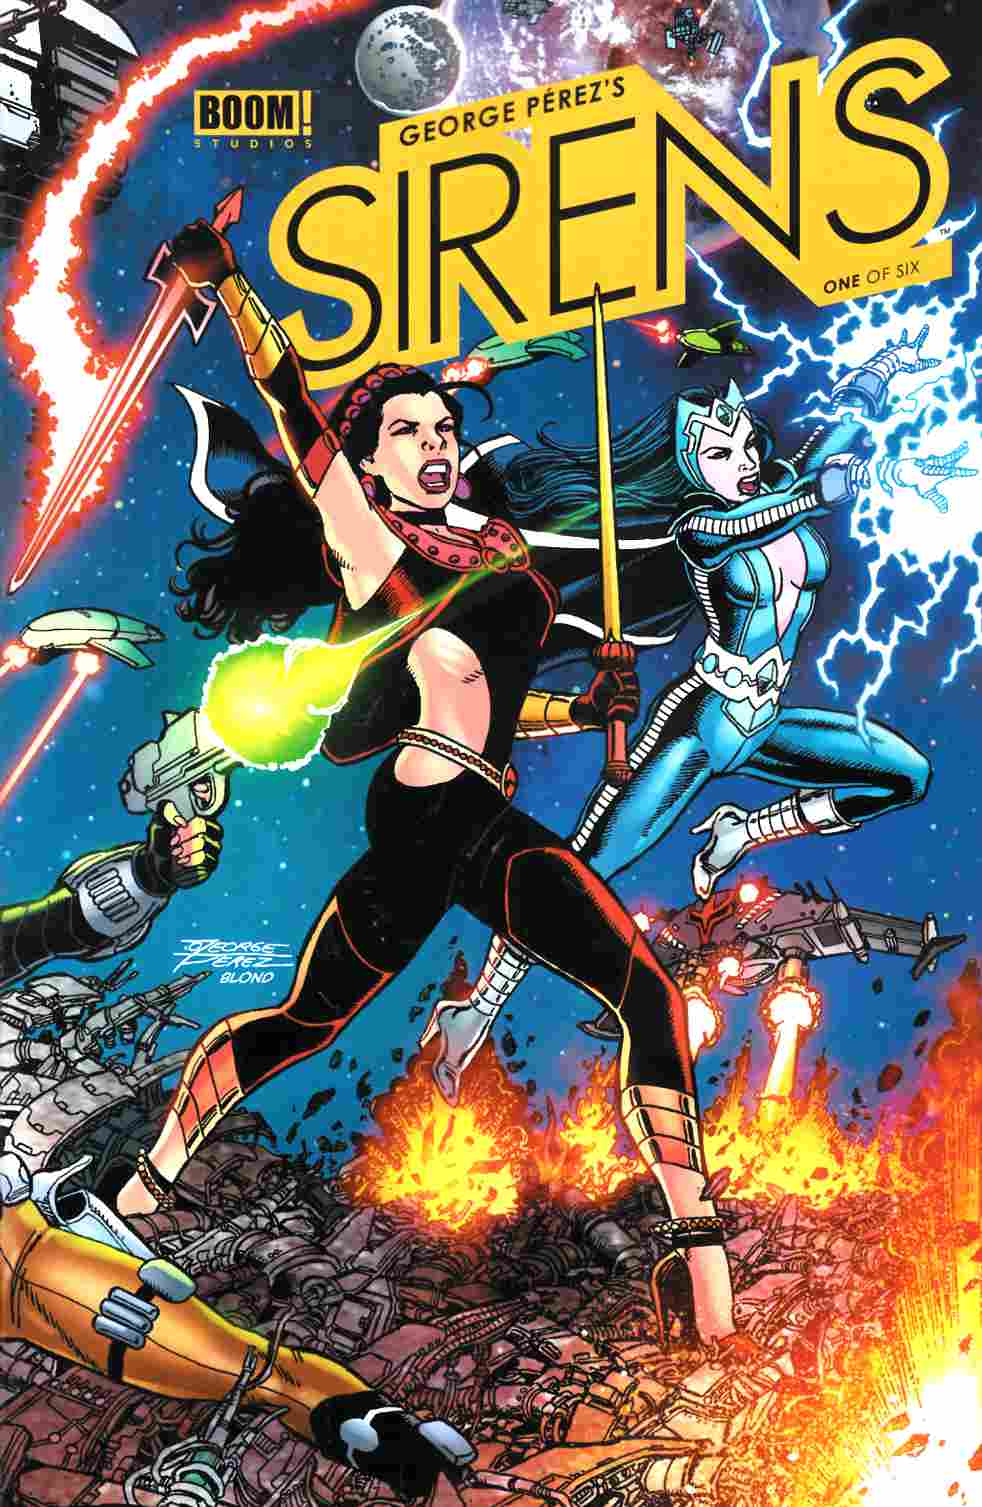 George Perez Sirens #1 Cover A [Comic] THUMBNAIL